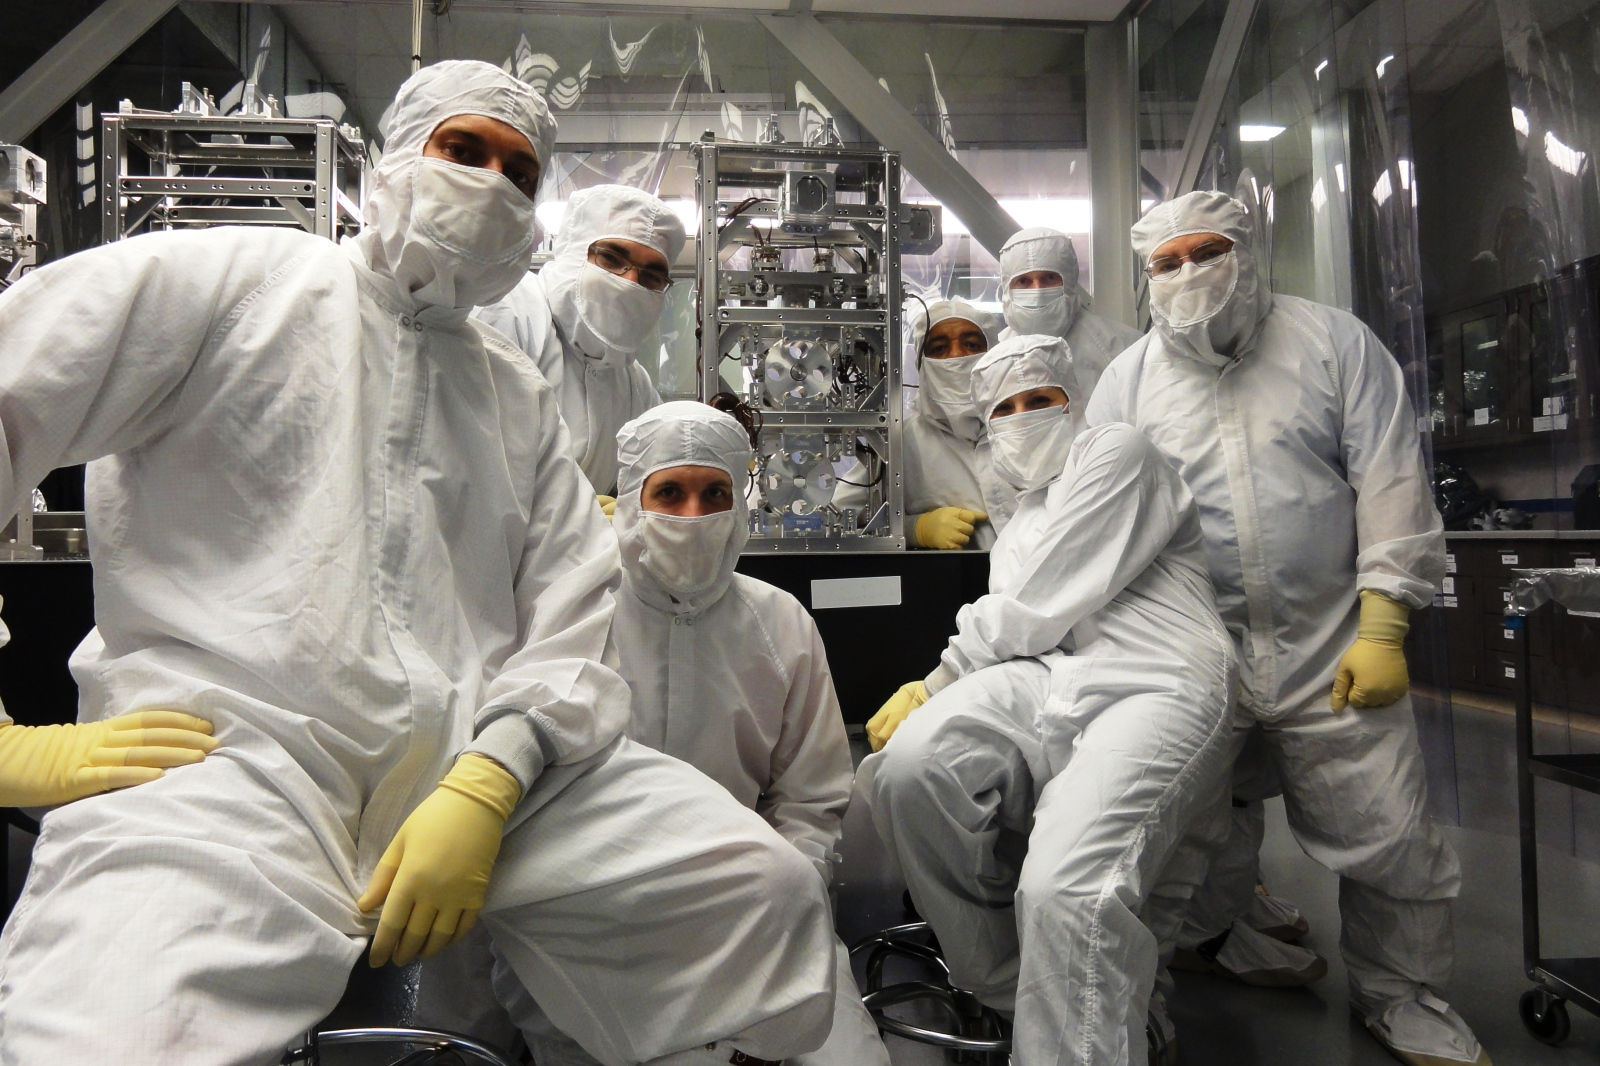 Some of the LIGO installation team